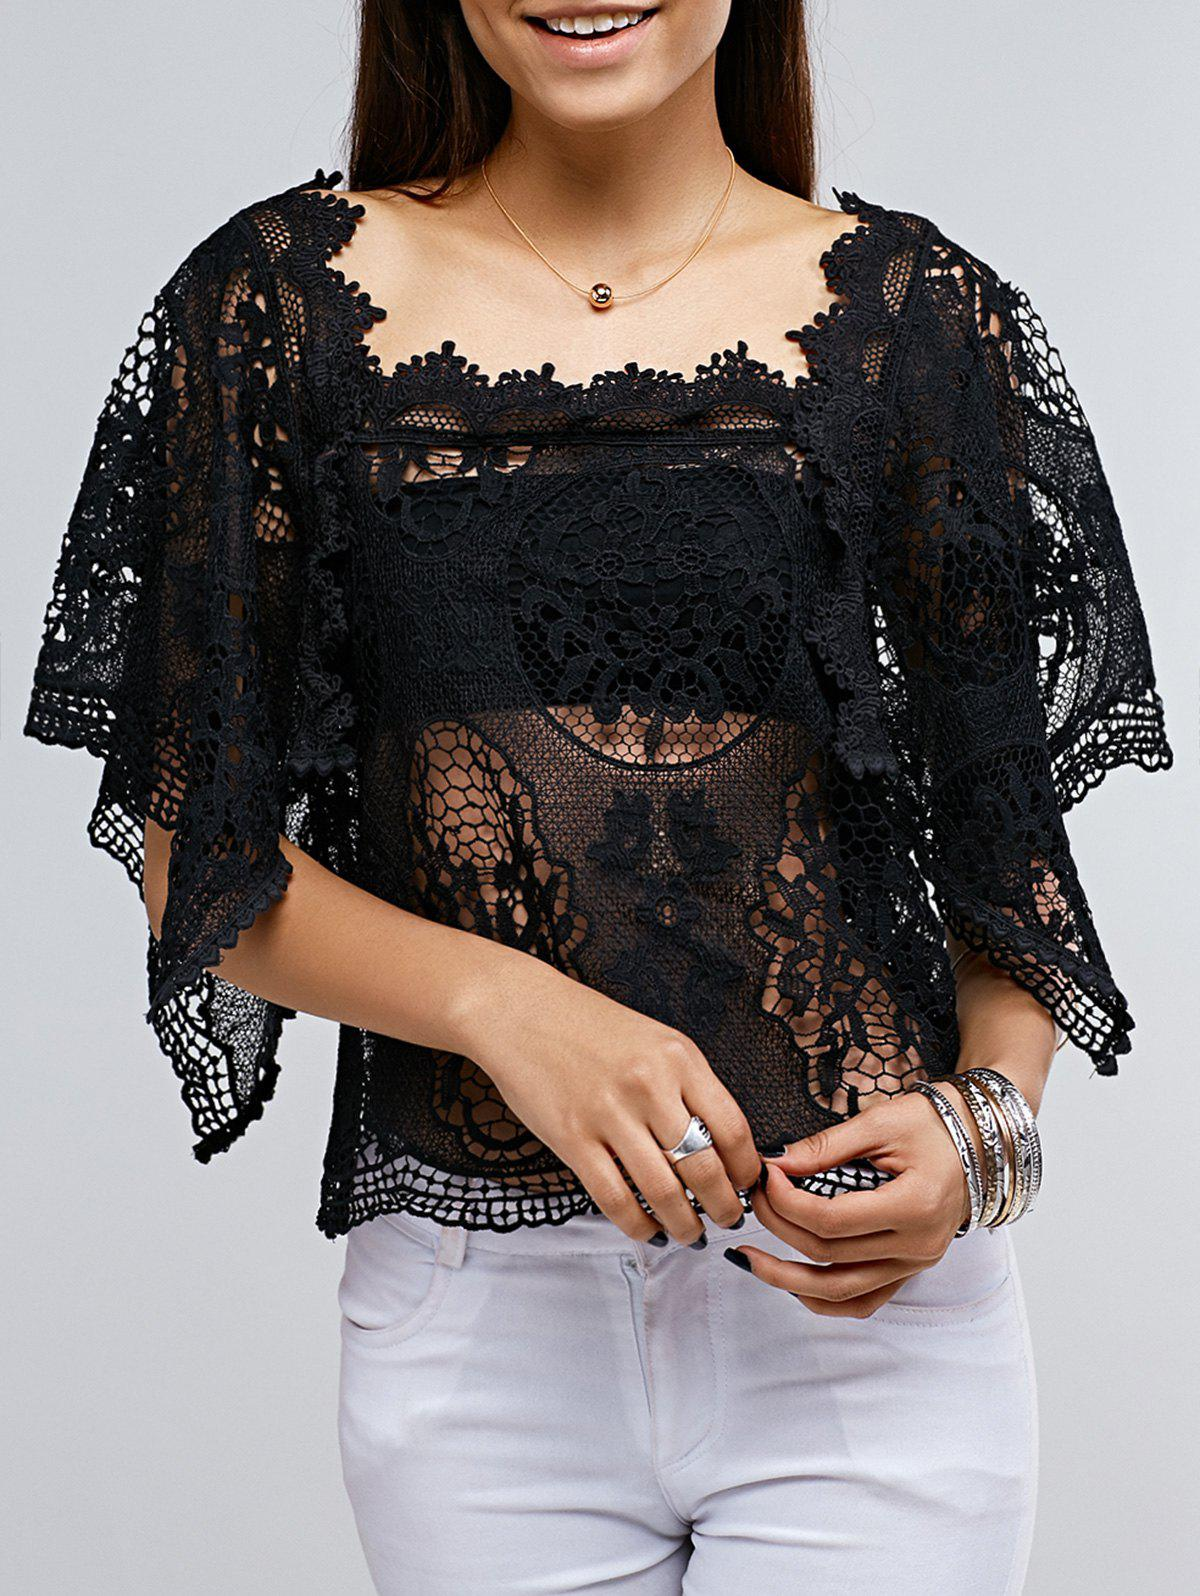 Lace Crochet See Though Frilly Cover Top